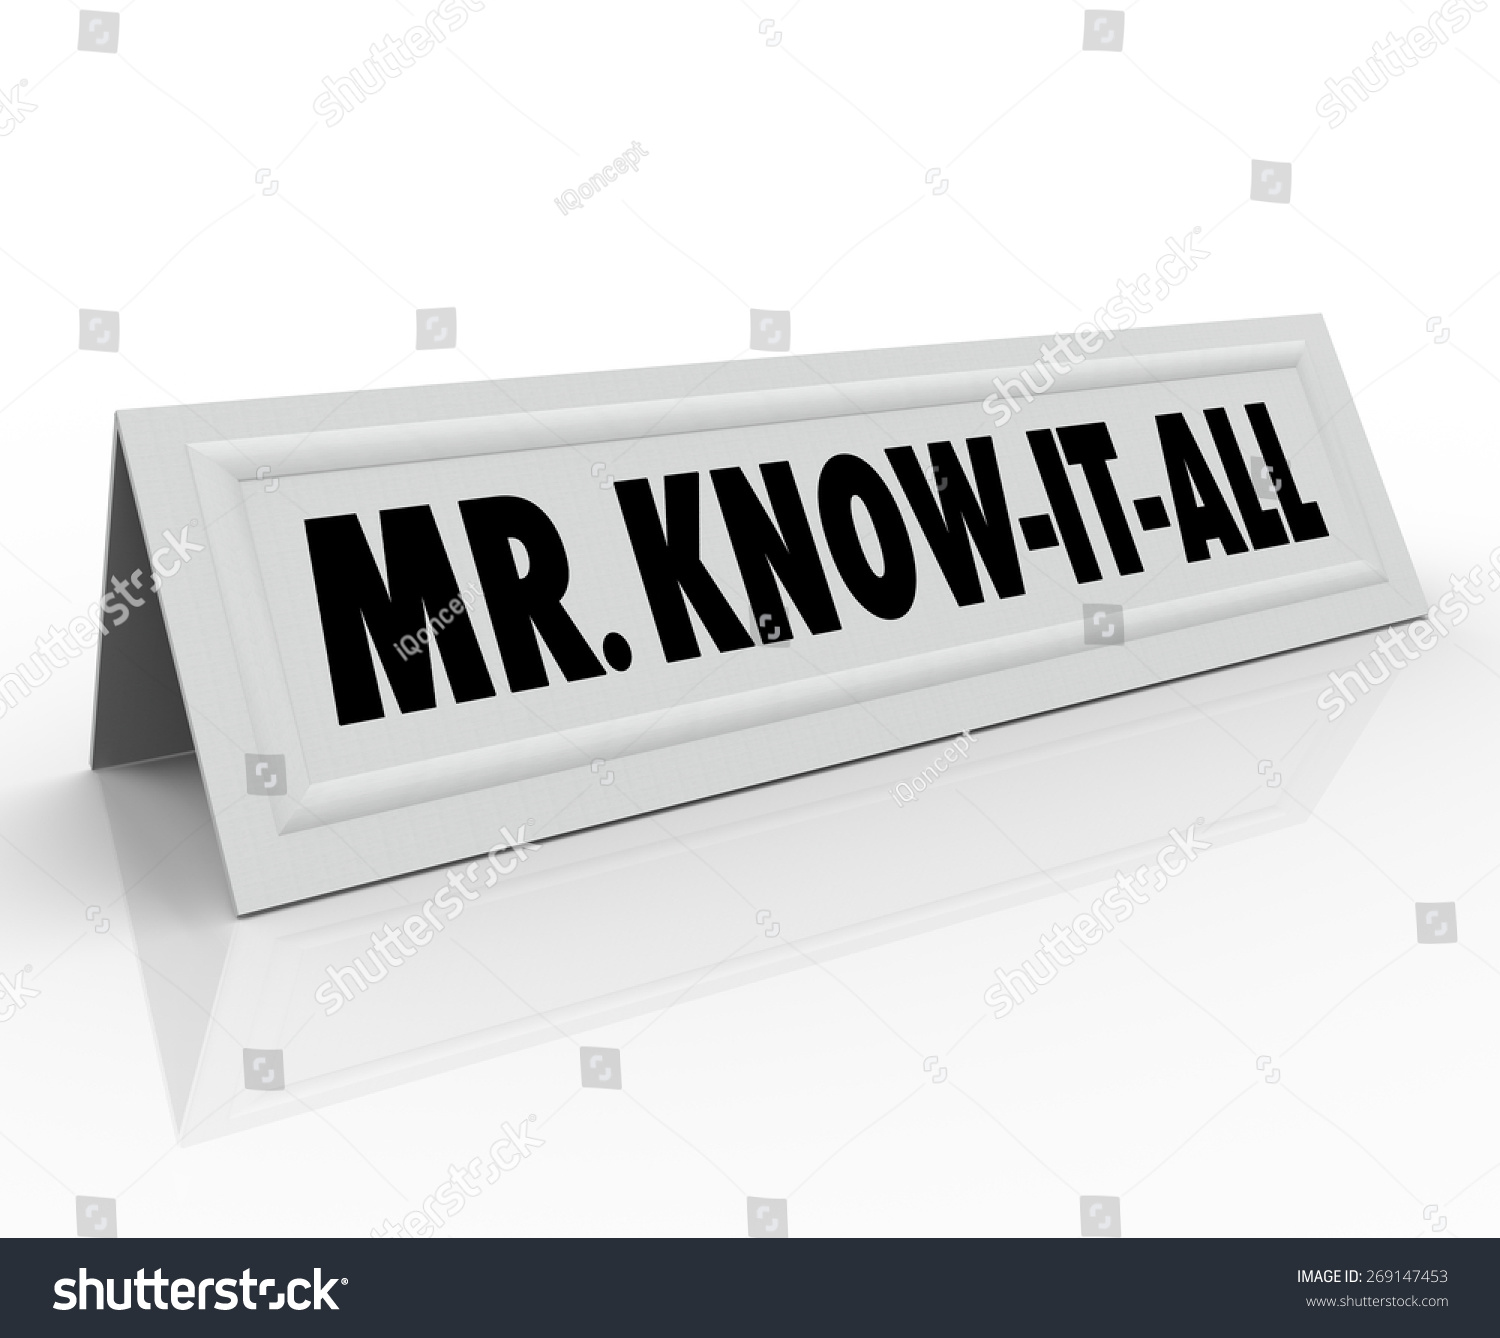 Mr. Know-It-All words on a name tent card to illustrate a  sc 1 st  Shutterstock & Mr Knowitall Words On Name Tent Stock Illustration 269147453 ...